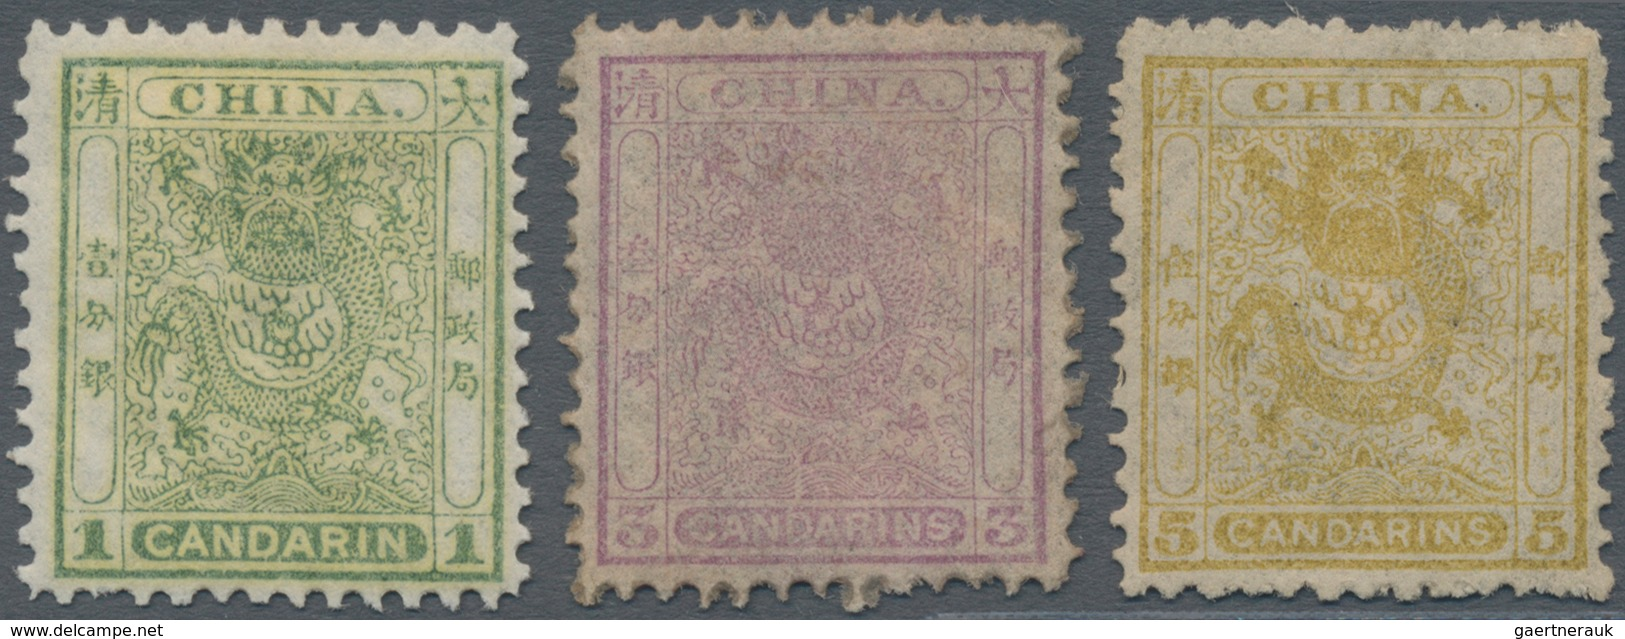 China: 1888, Small Dragons Second Printing Perf. 11.5-12, Complete Set Of Three, MH, Very Fresh Colo - Chine